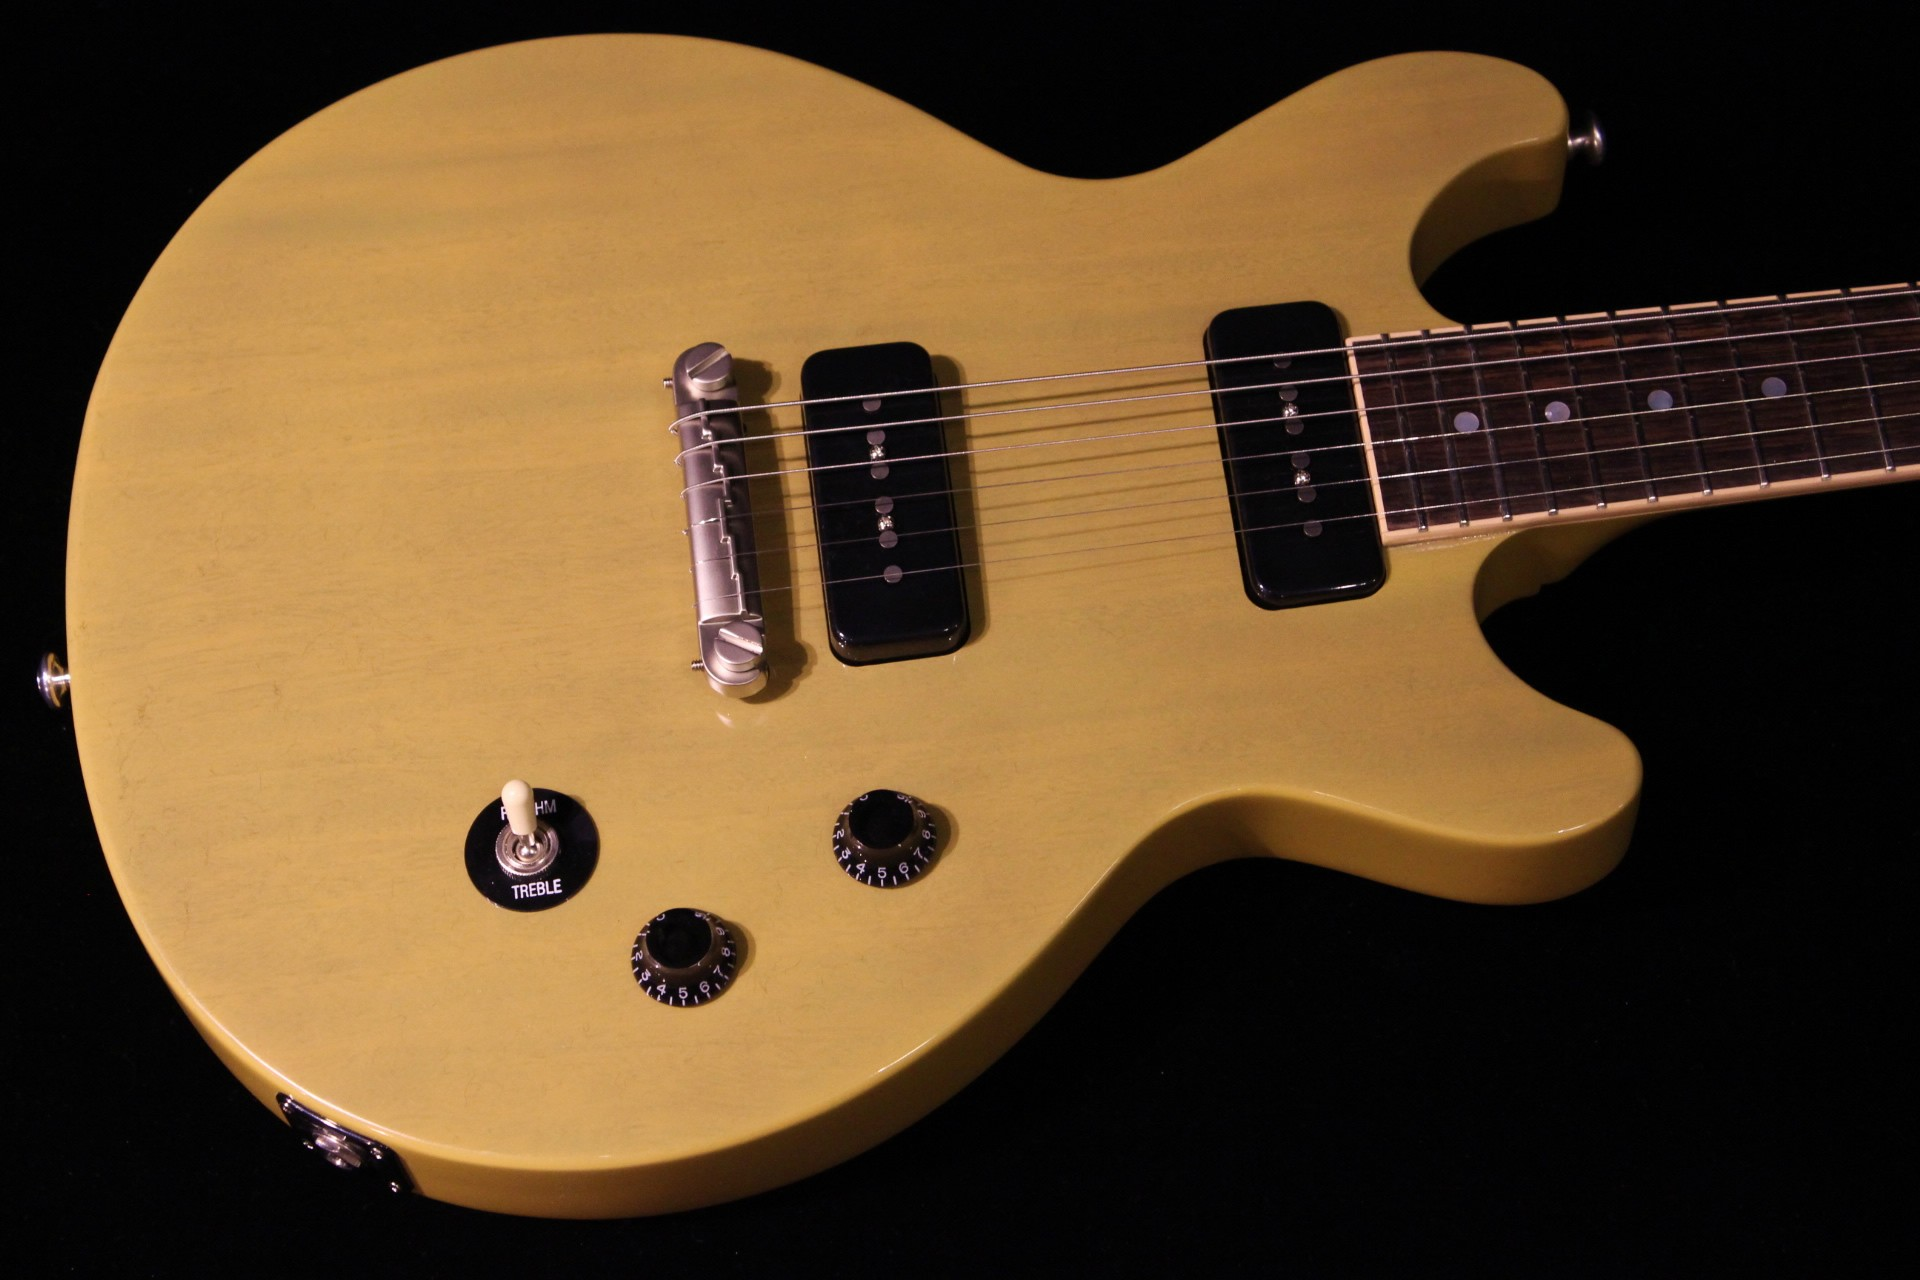 gibson les paul special double cut 2015 gloss yellow sn 150005267 gino guitars. Black Bedroom Furniture Sets. Home Design Ideas